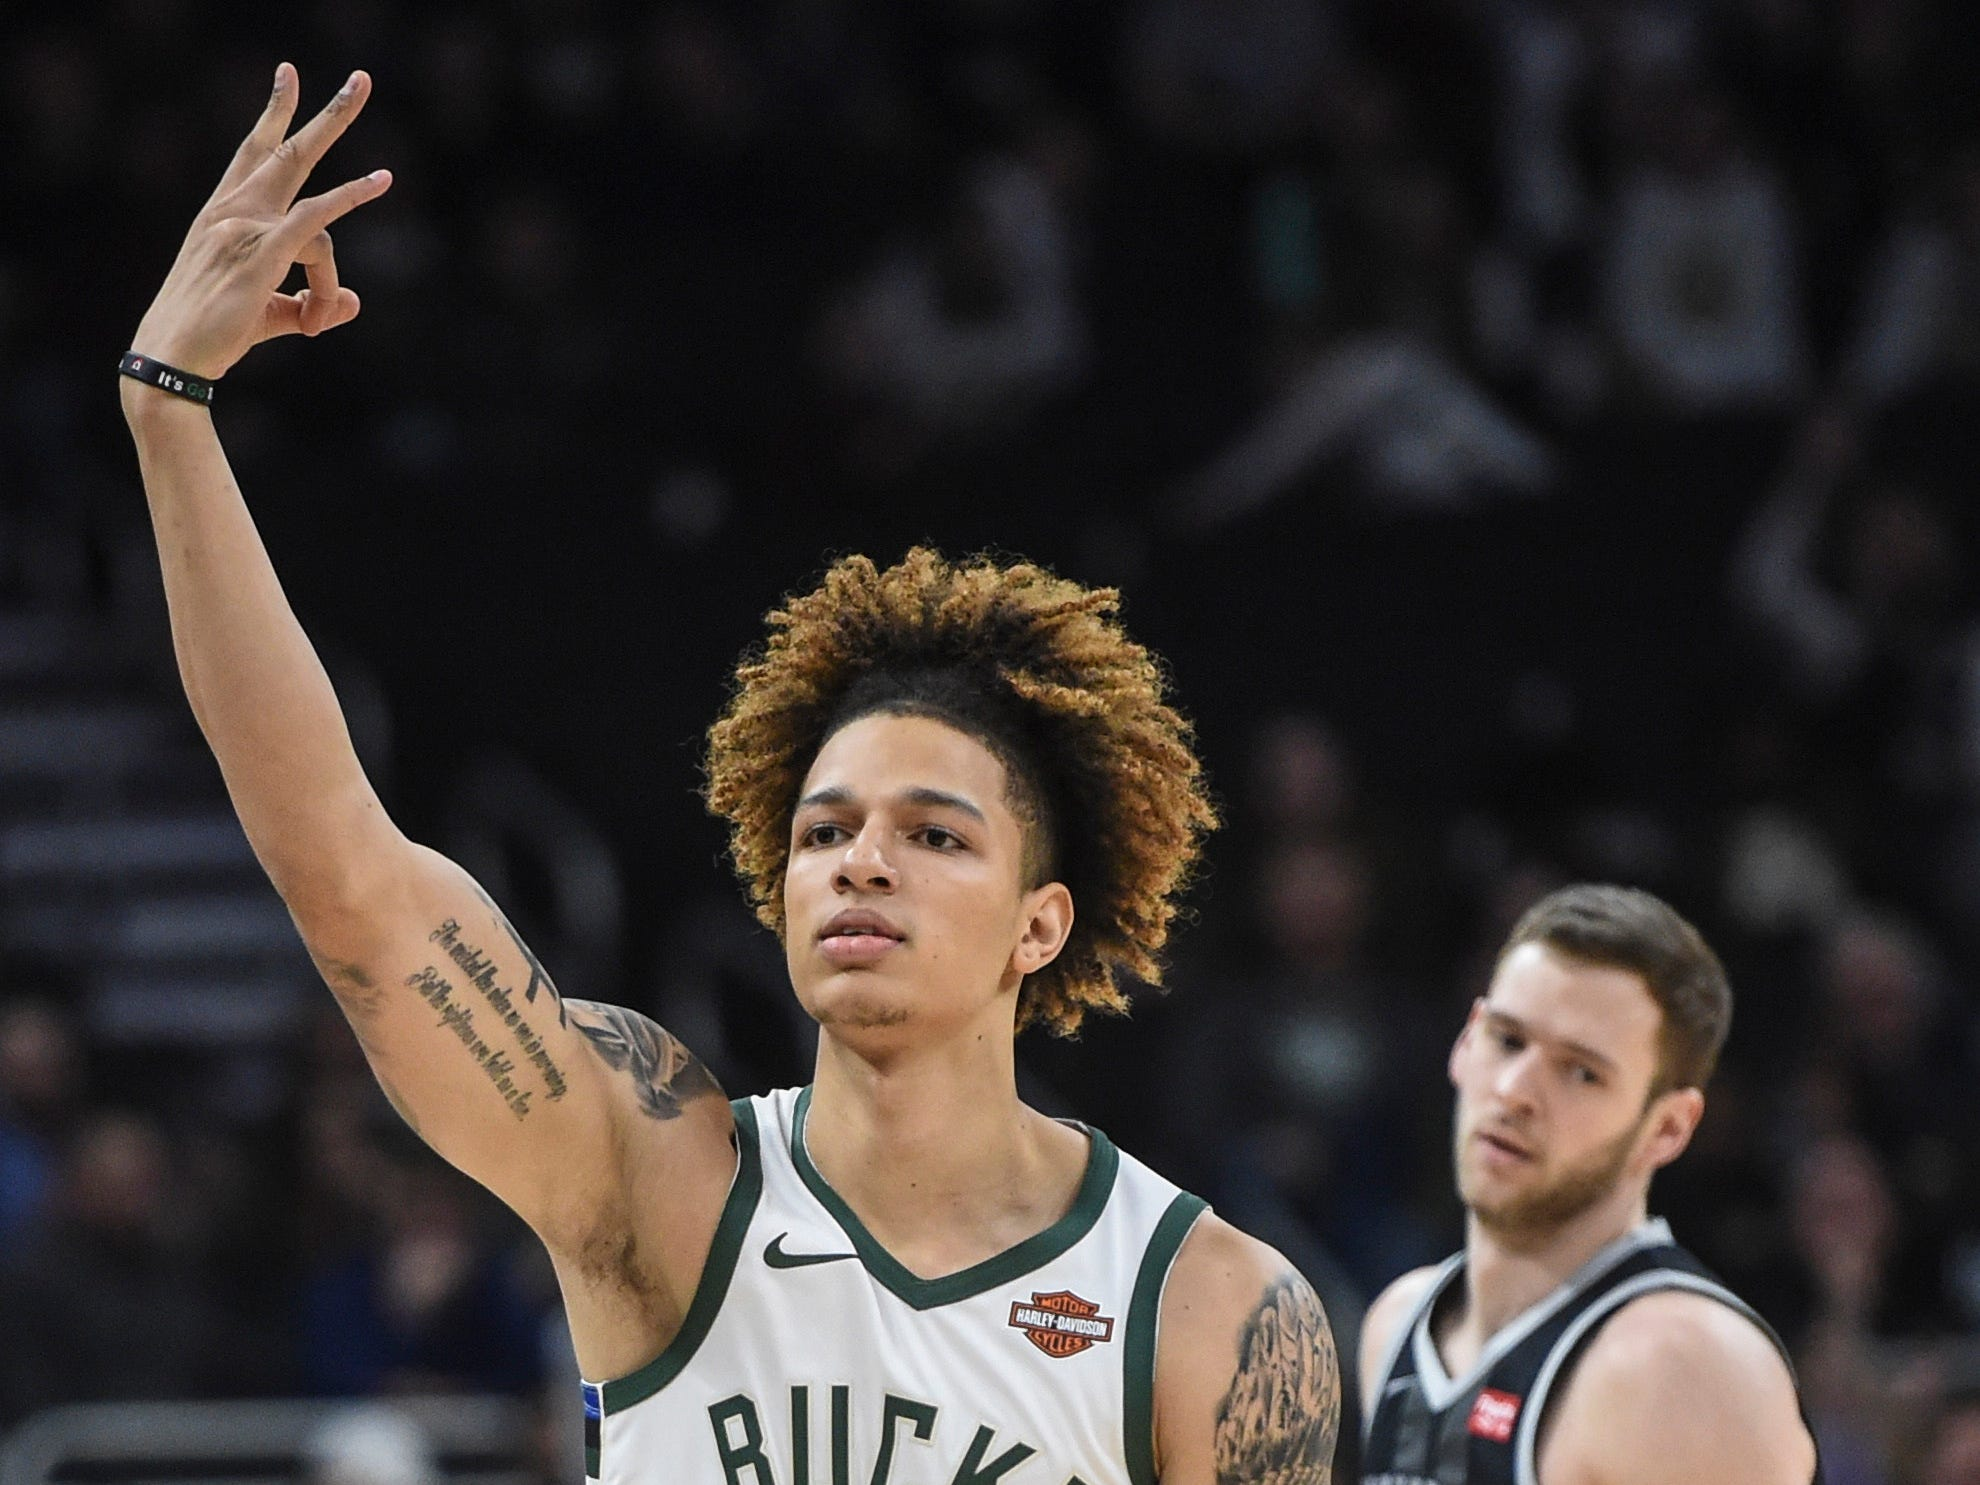 Bucks forward D.J. Wilson, playing in his first game this season, reacts after knocking down a three-pointer against the Pistons on Wednesday night.